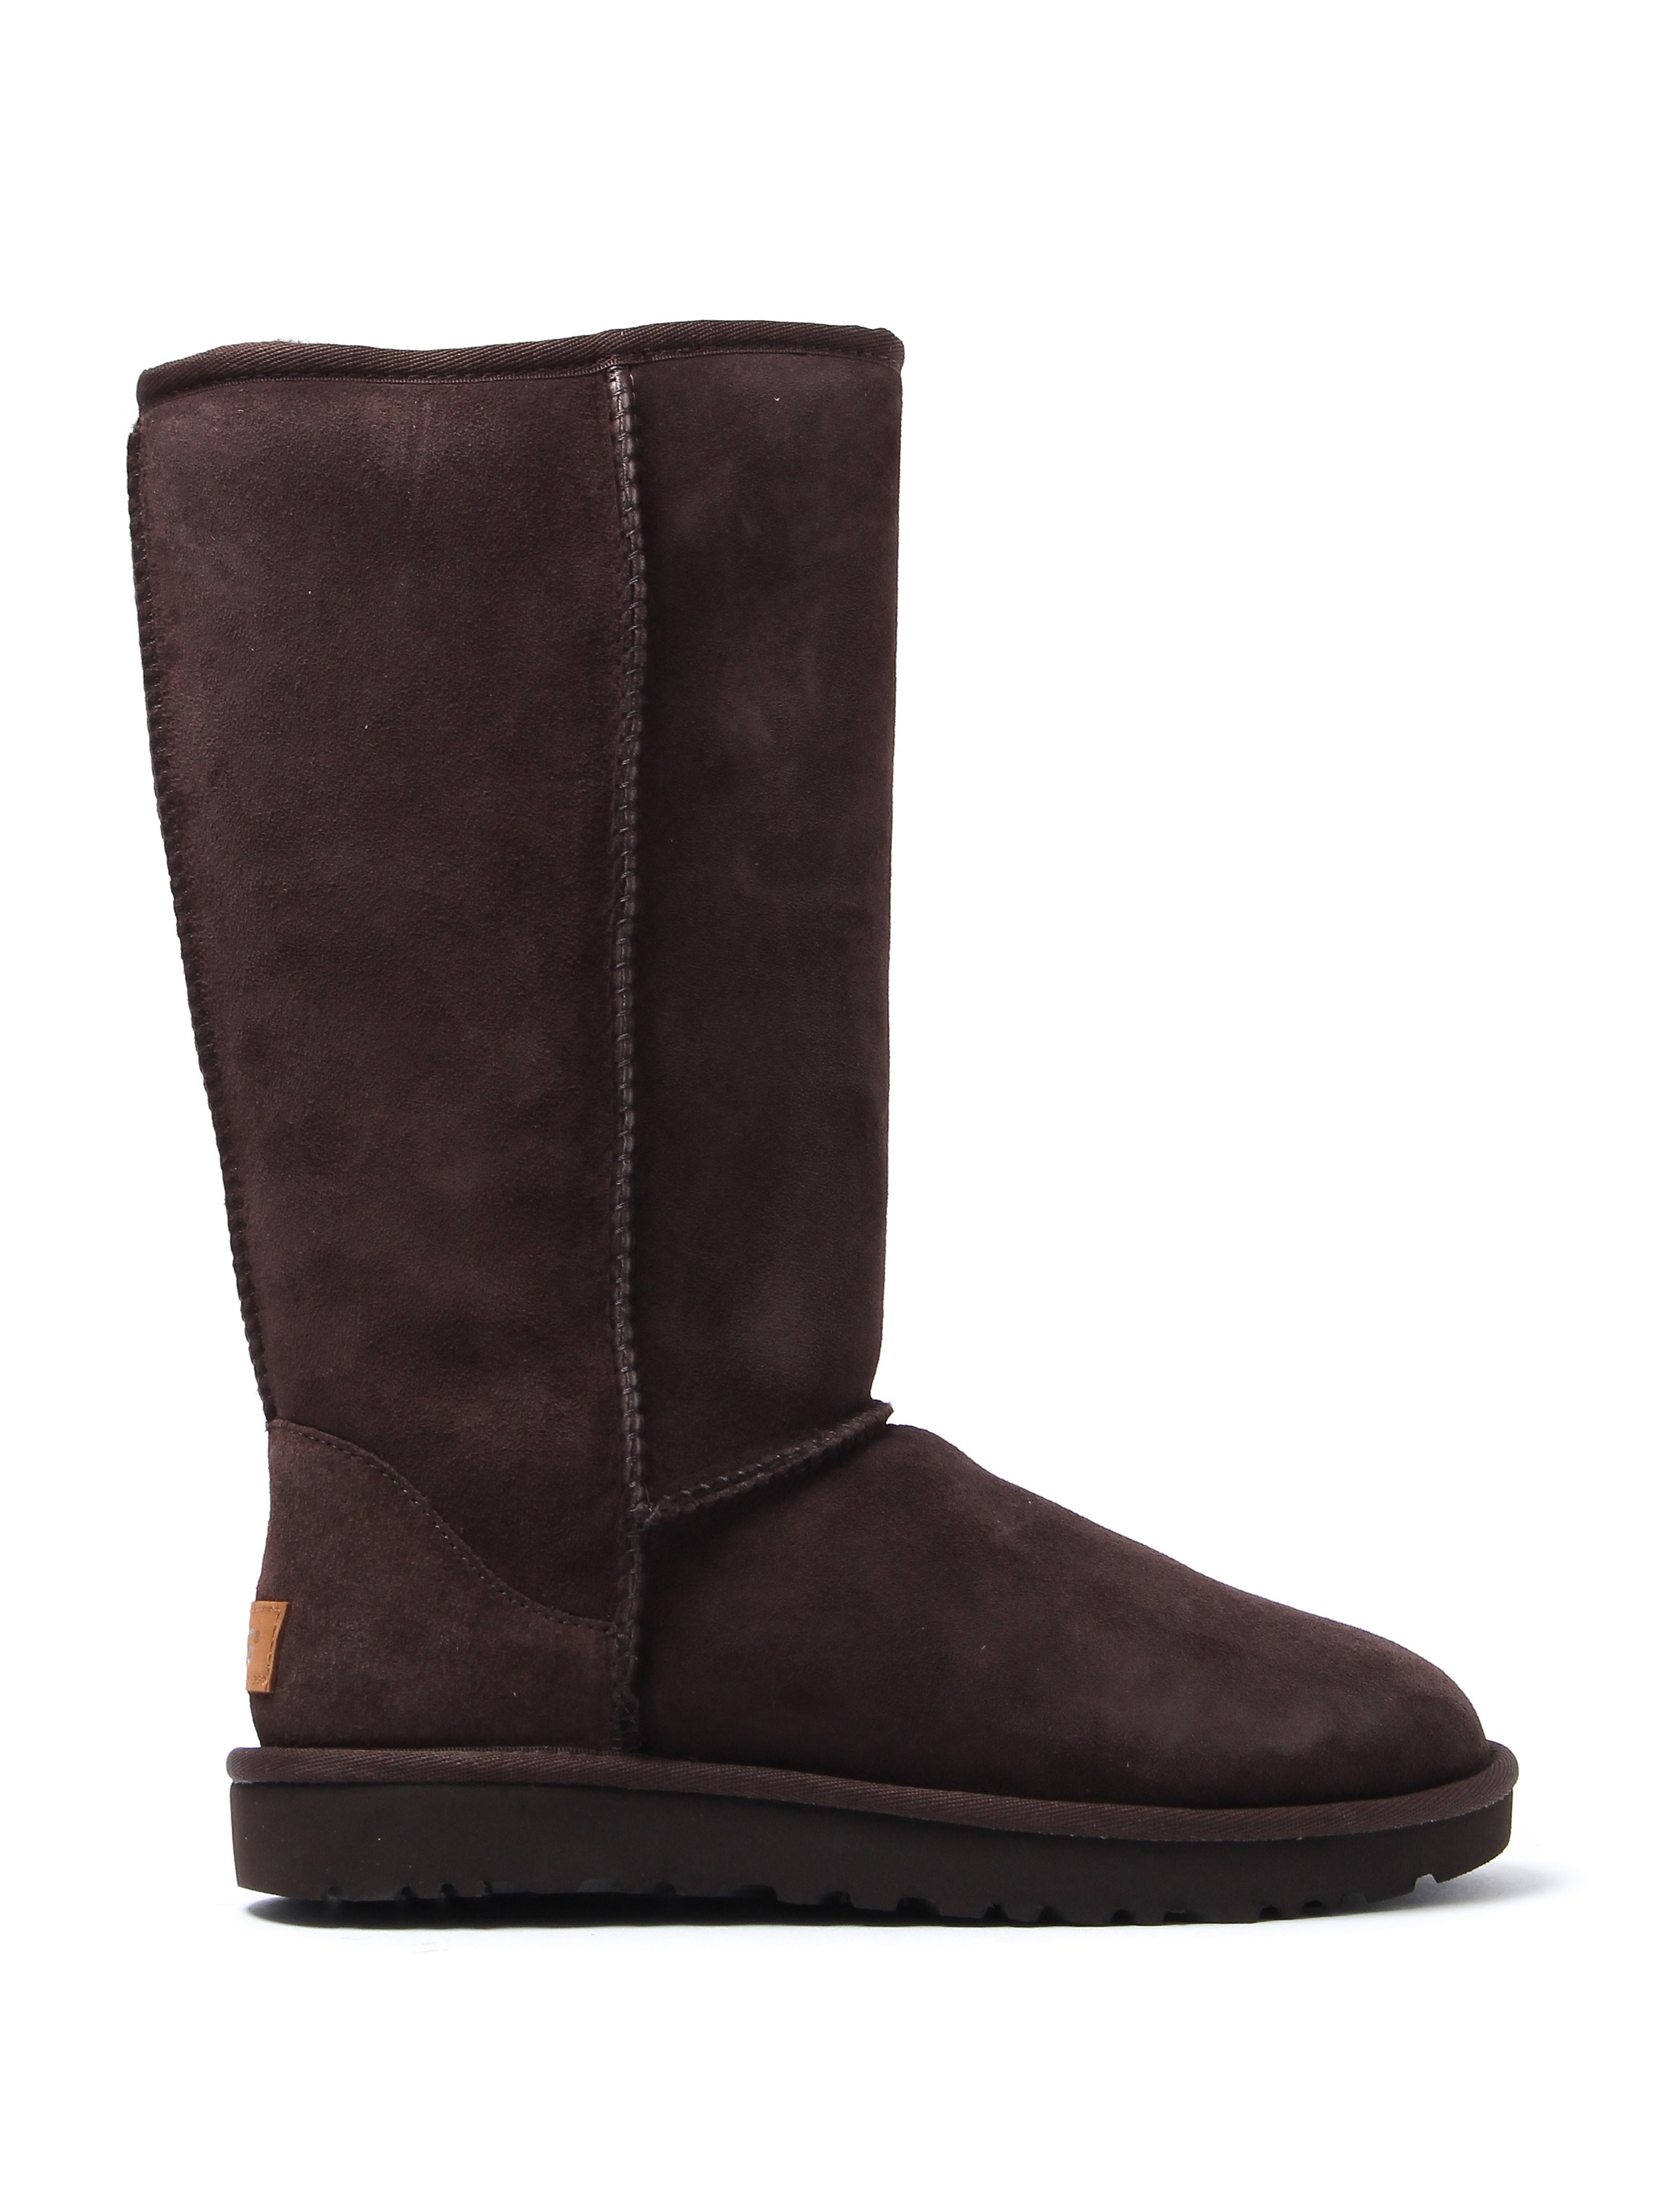 UGG Women's Classic Tall II Sheepskin Boots - Chocolate